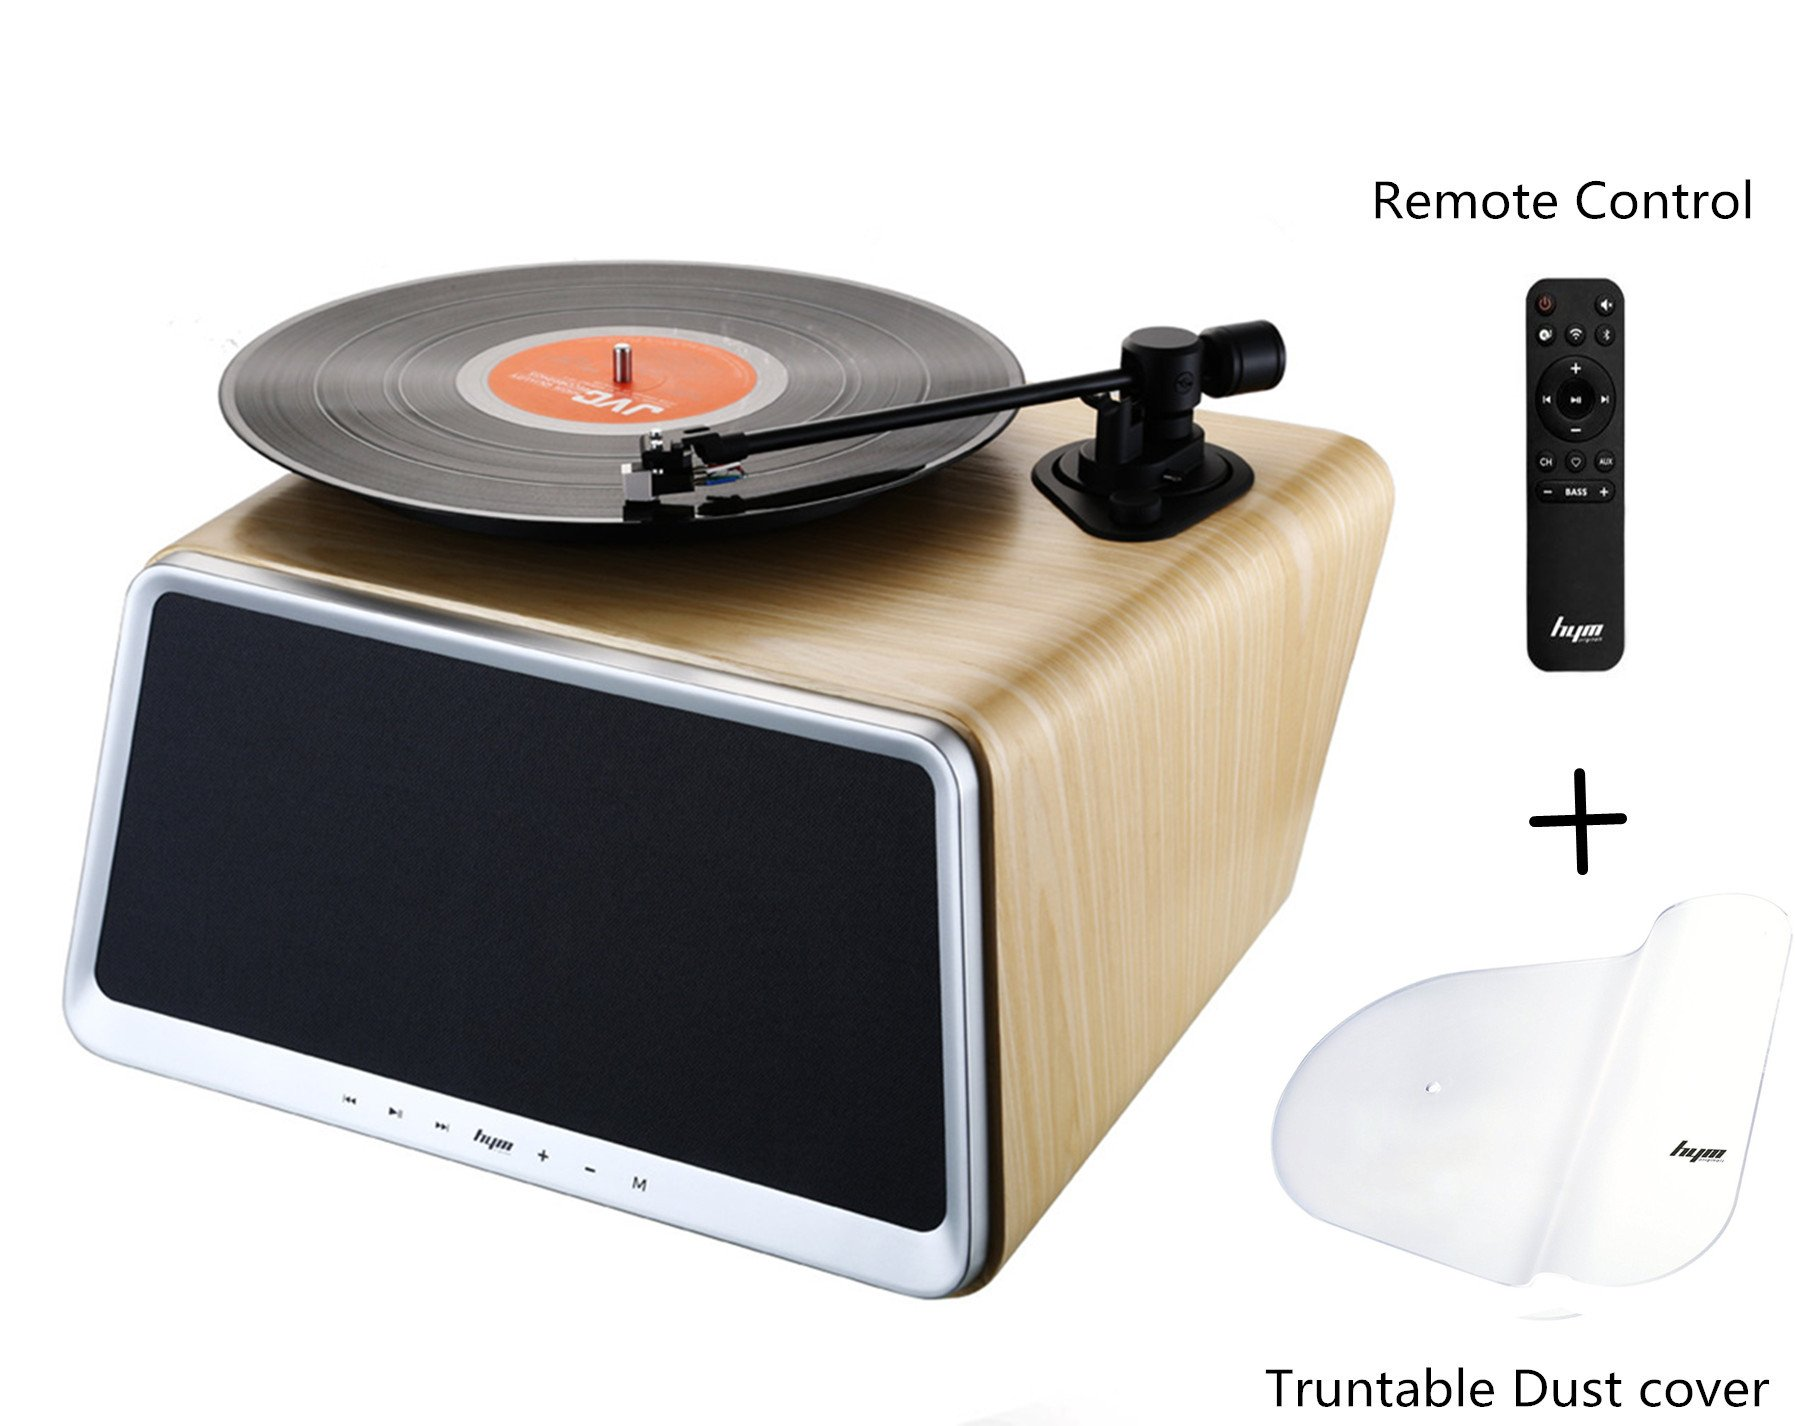 HYM Seed Professional Turntable Stereo System, Smart Vinyl Records Turntable Built in 80Watt HiFi Speakers Bluetooth Wifi AUX-in USB w/Turntable Dust Cover&Remote Controller for Vinyl Records Player by HYM (Image #1)